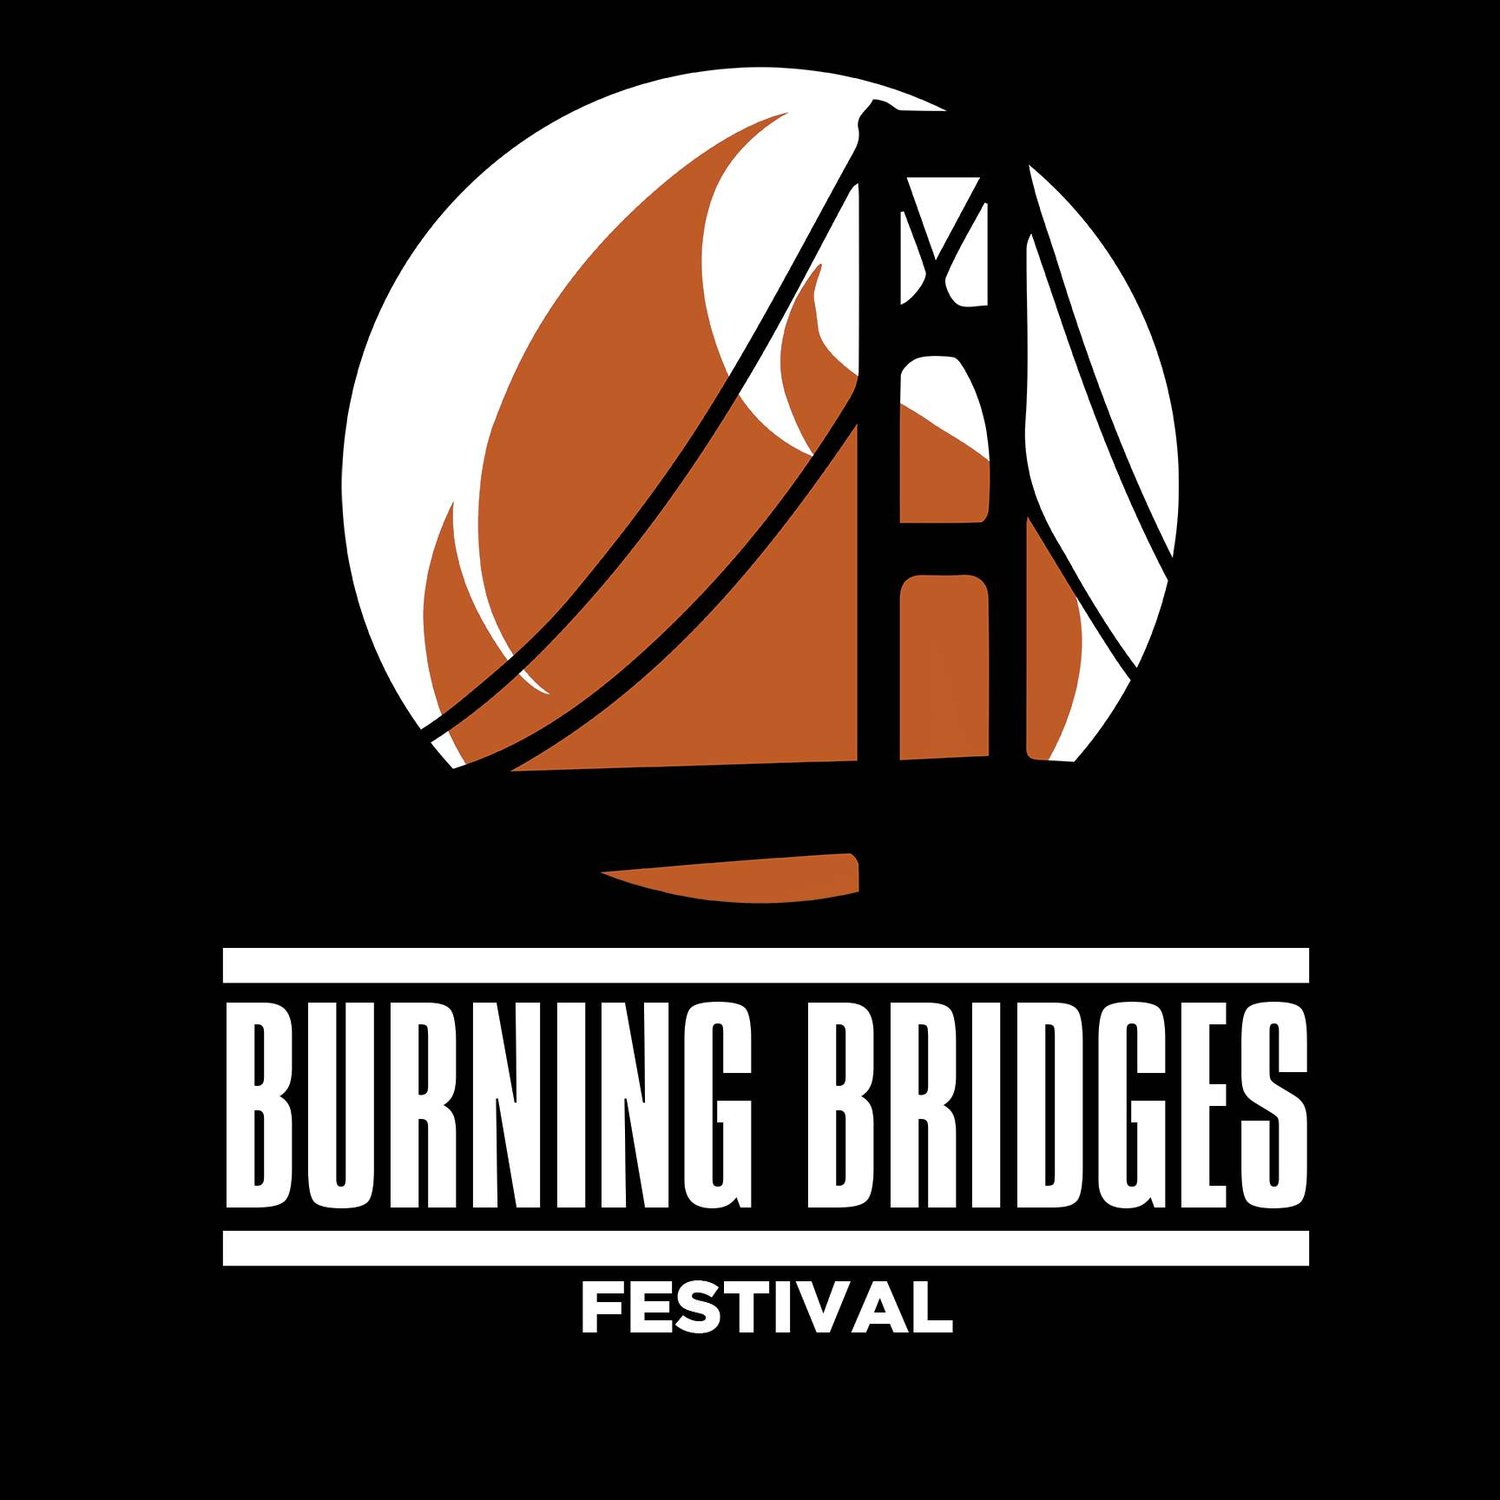 Burning Bridges Festival